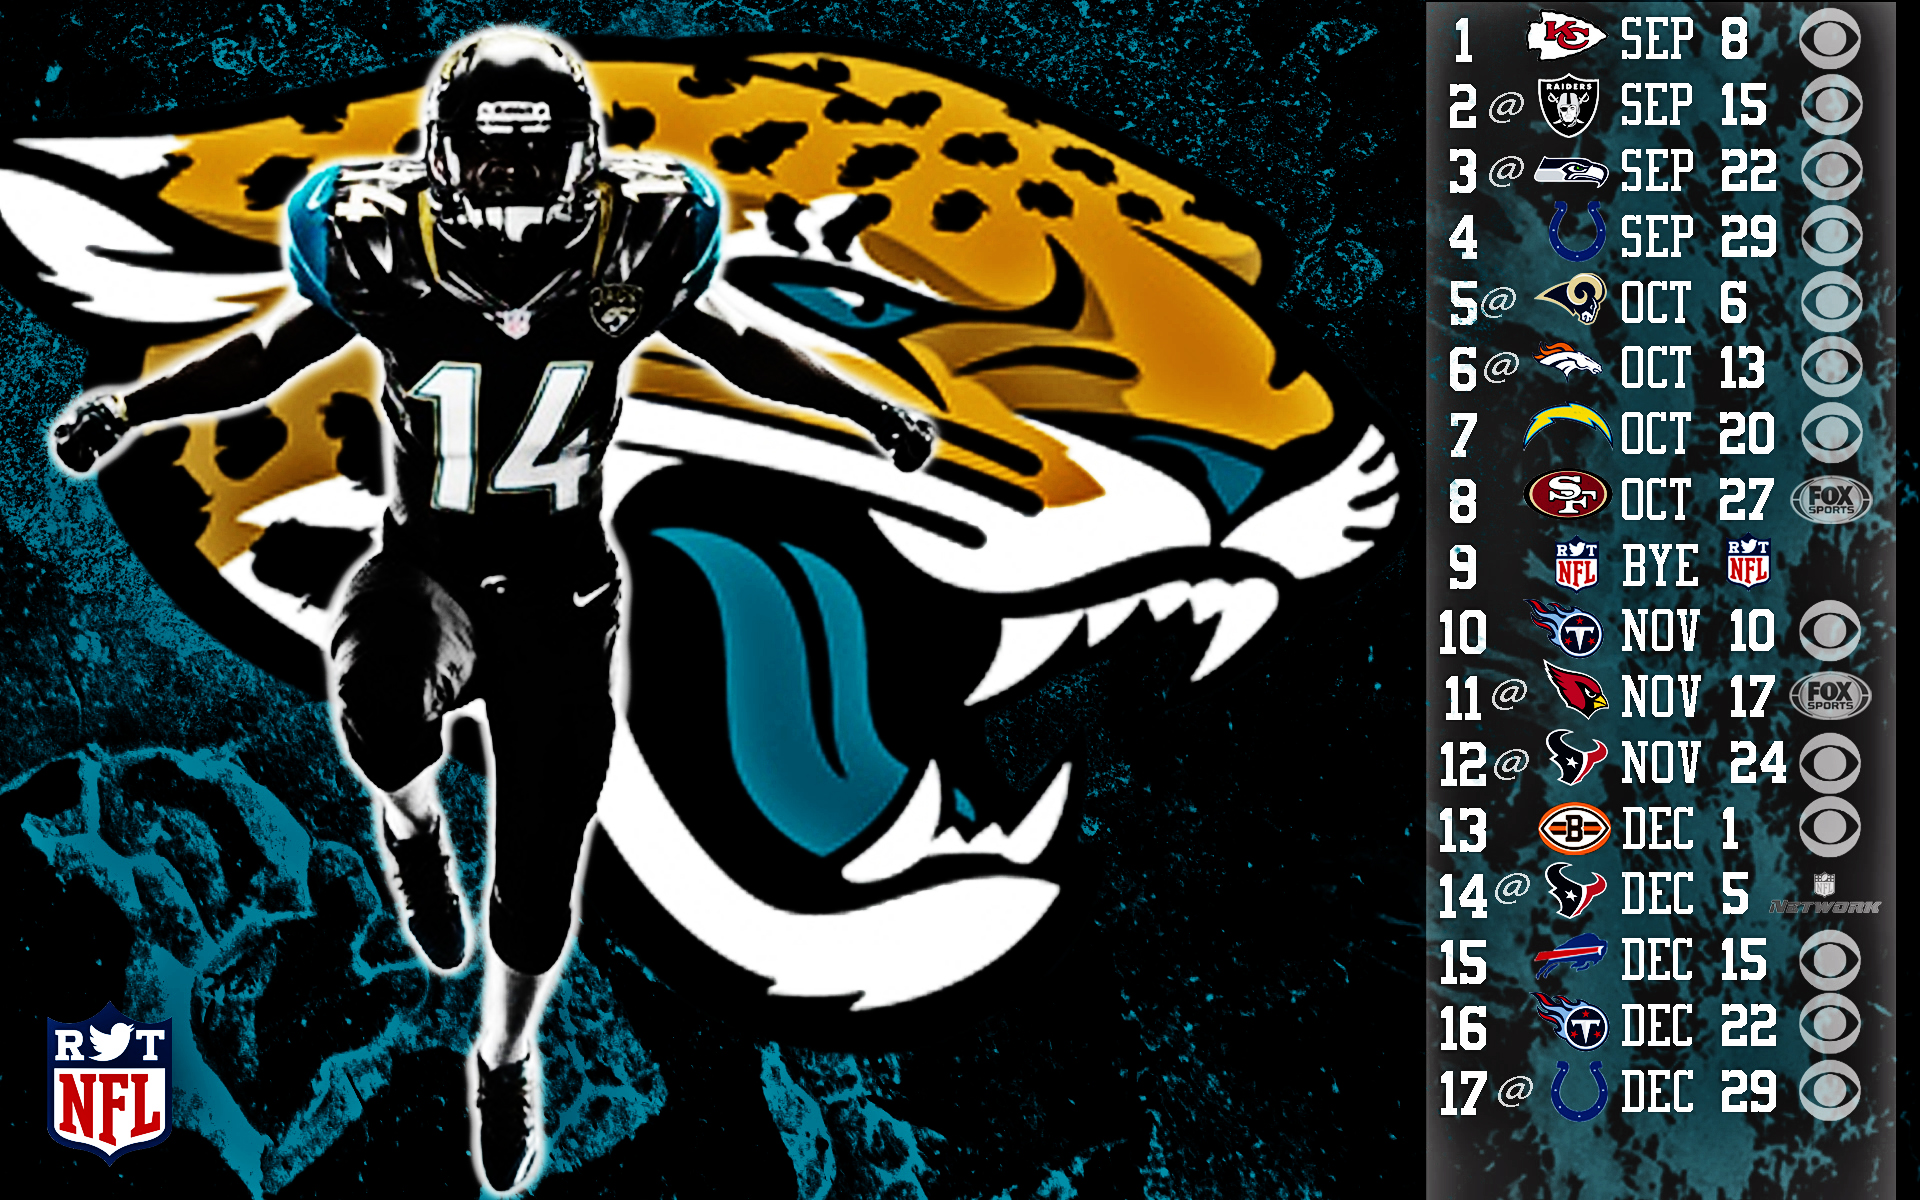 2013 Jacksonville Jaguars football nfl wallpaper background 1920x1200